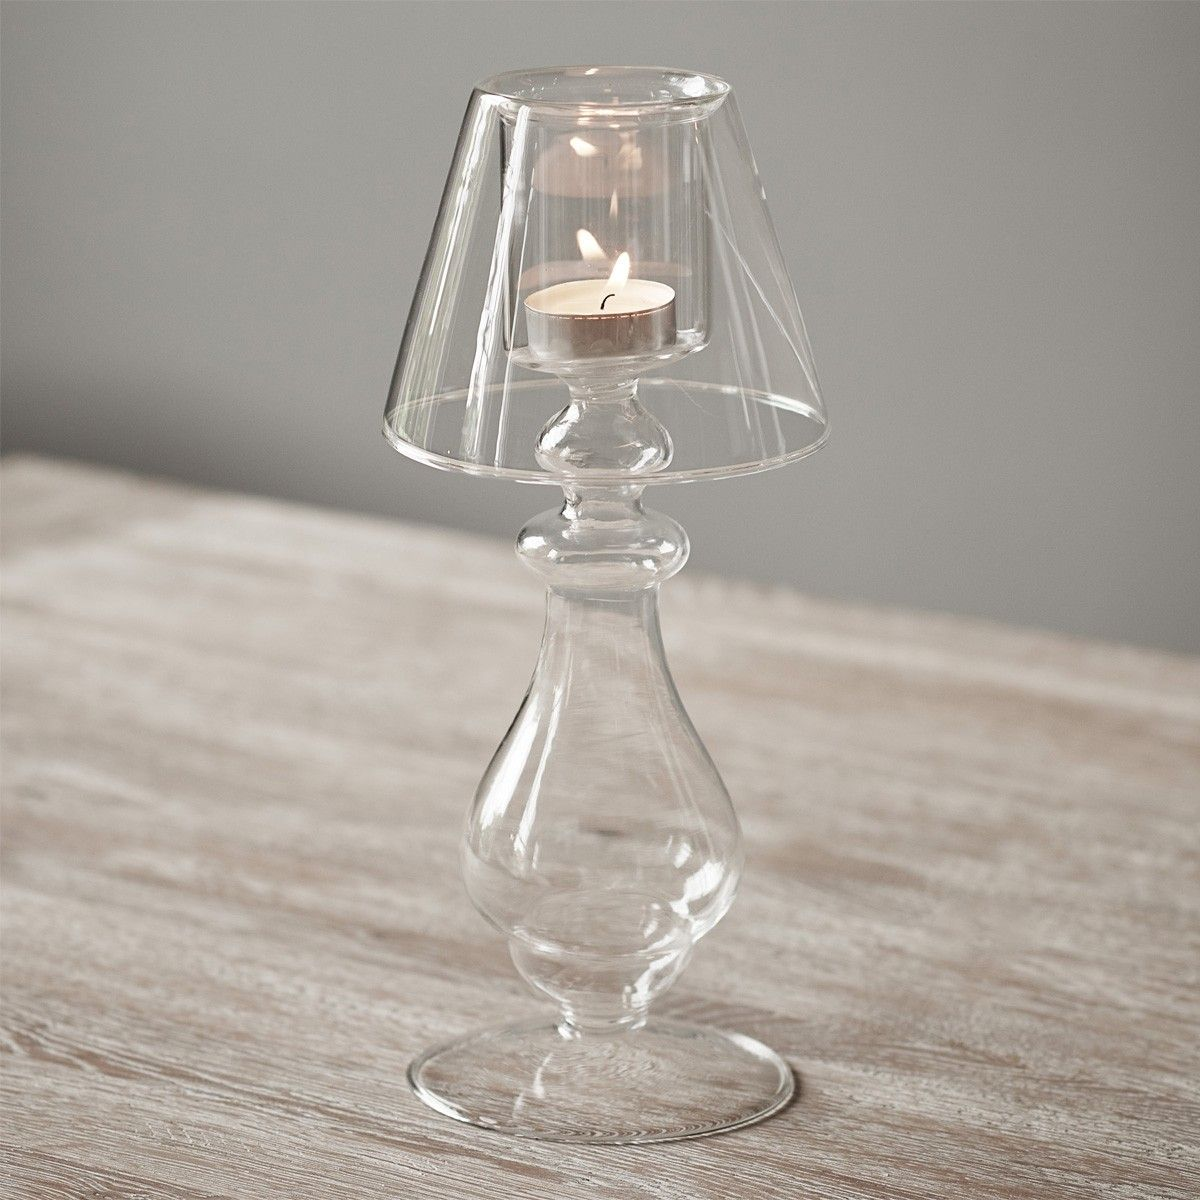 Ronnie Tall Glass Candlestick